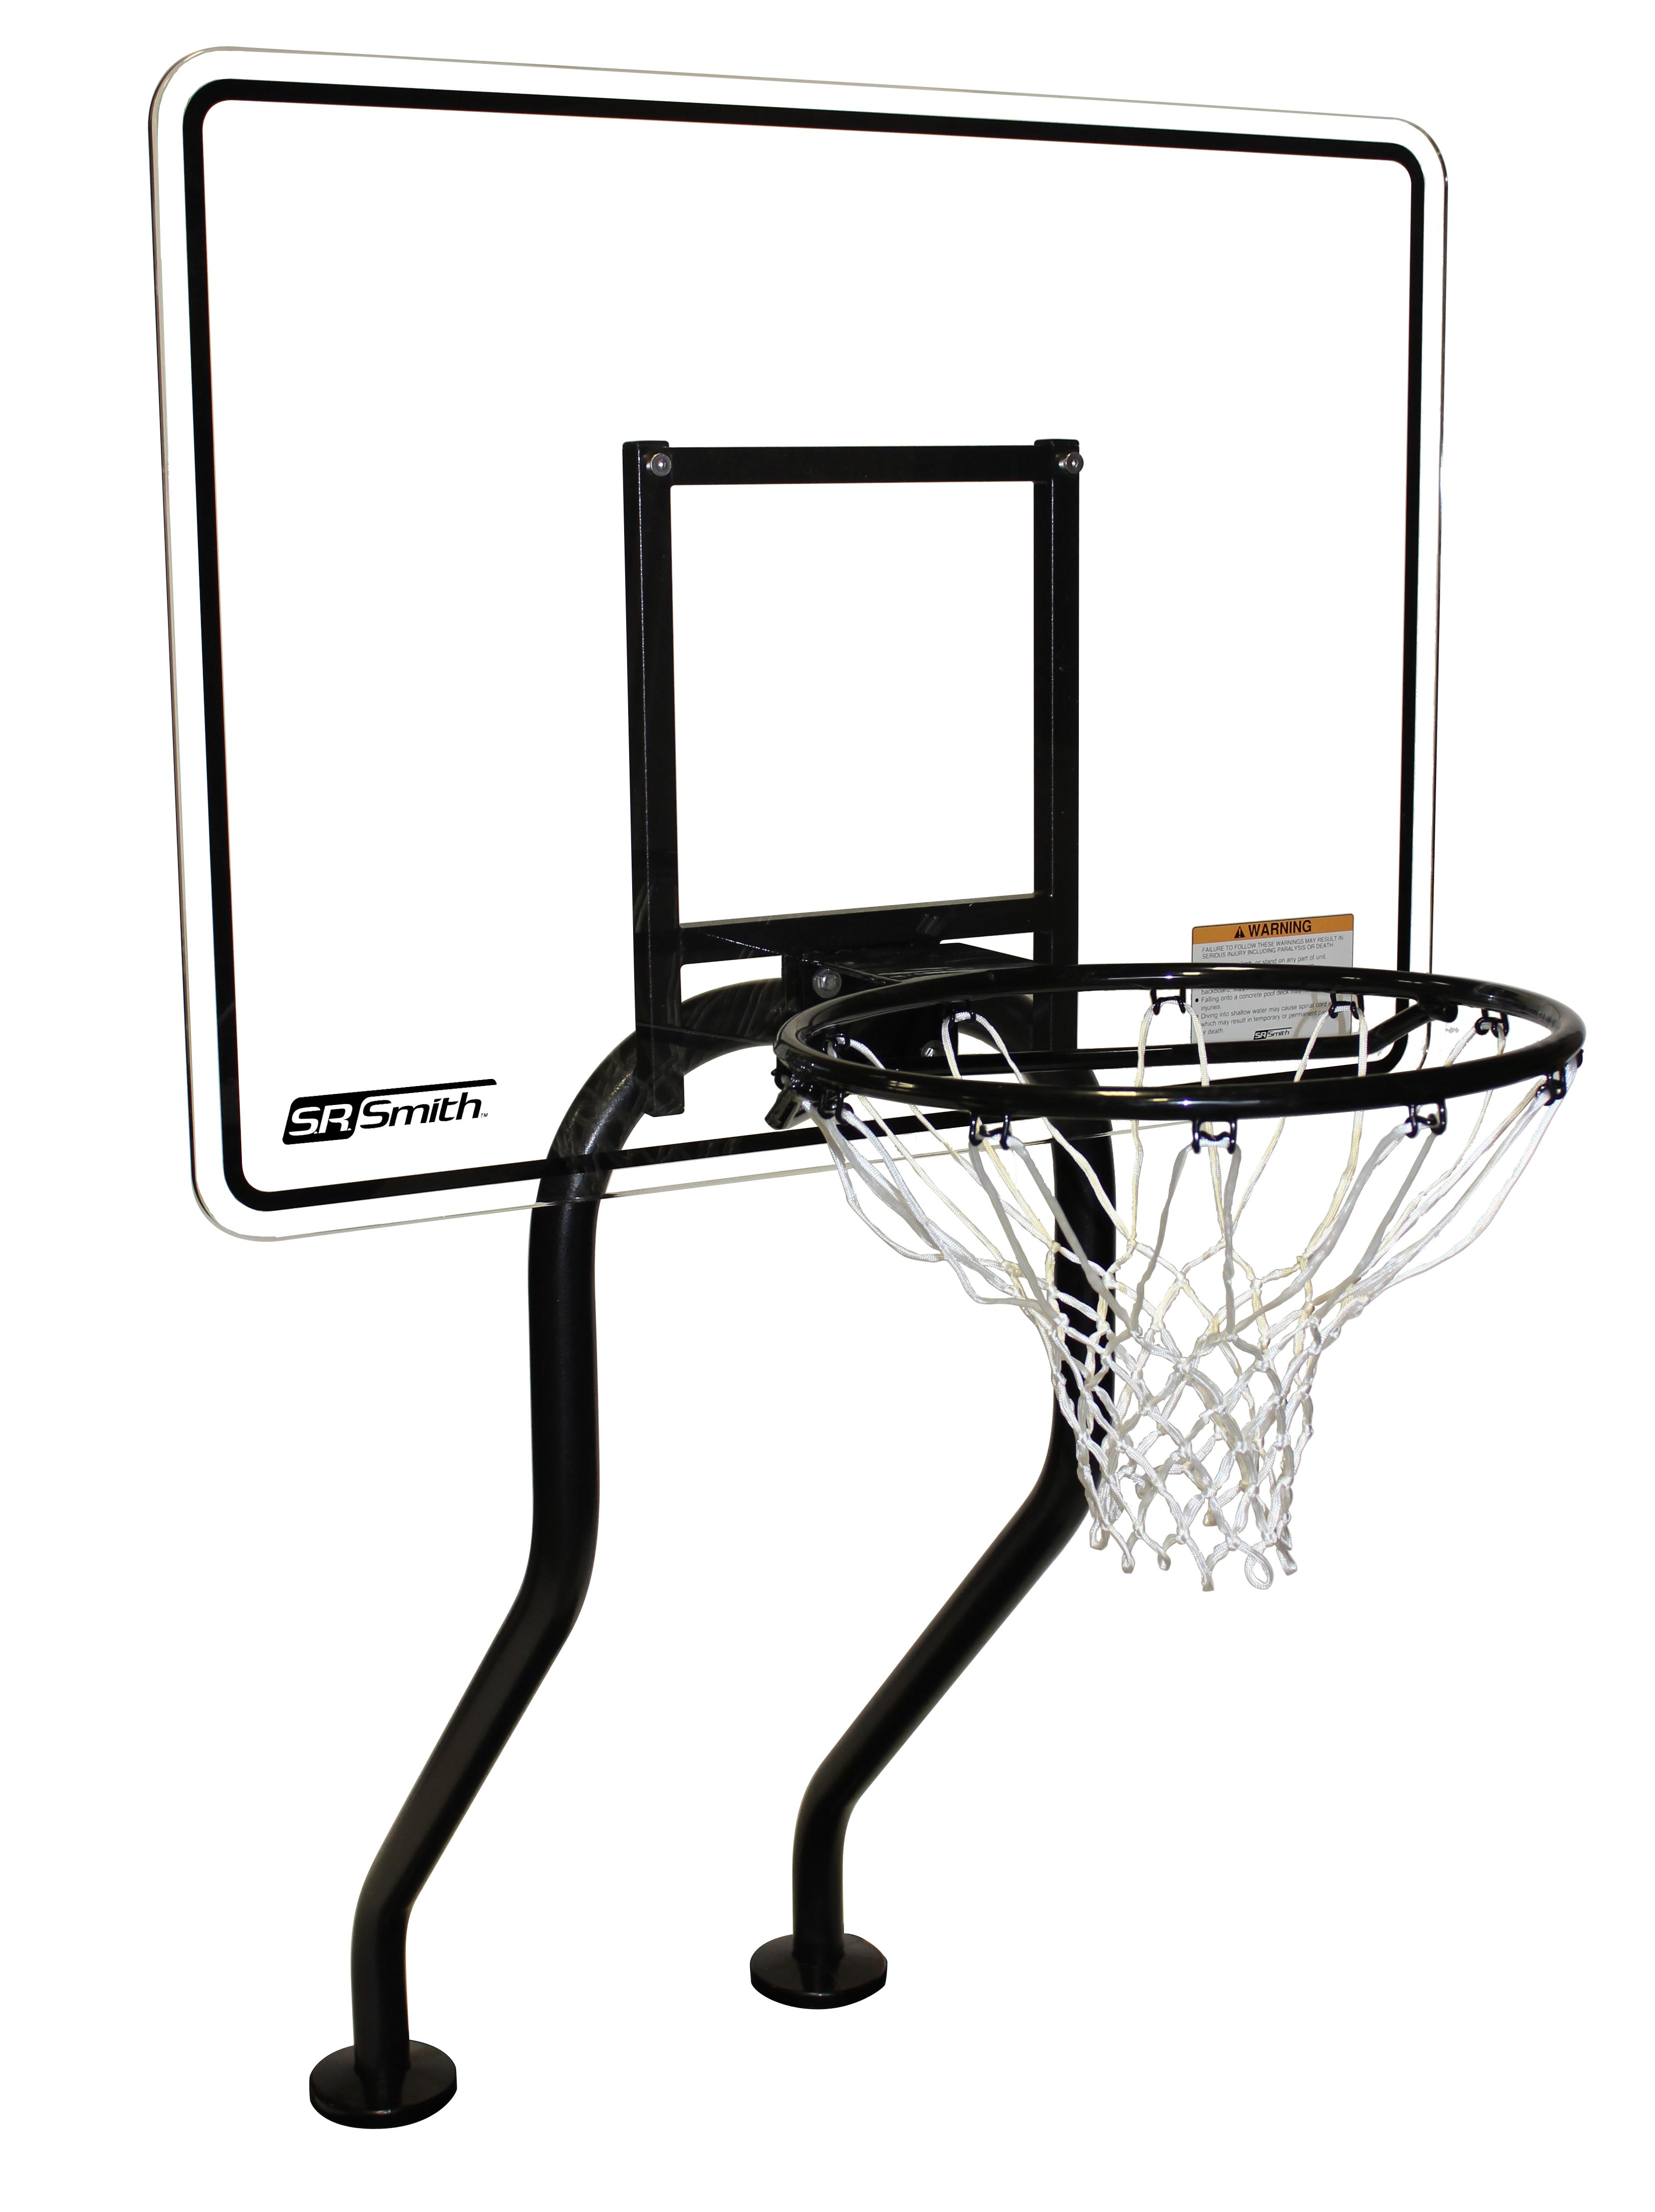 Commercial Salt Friendly Basketball Game Sr Smith Products Hoop Dimensions Diagram High Res